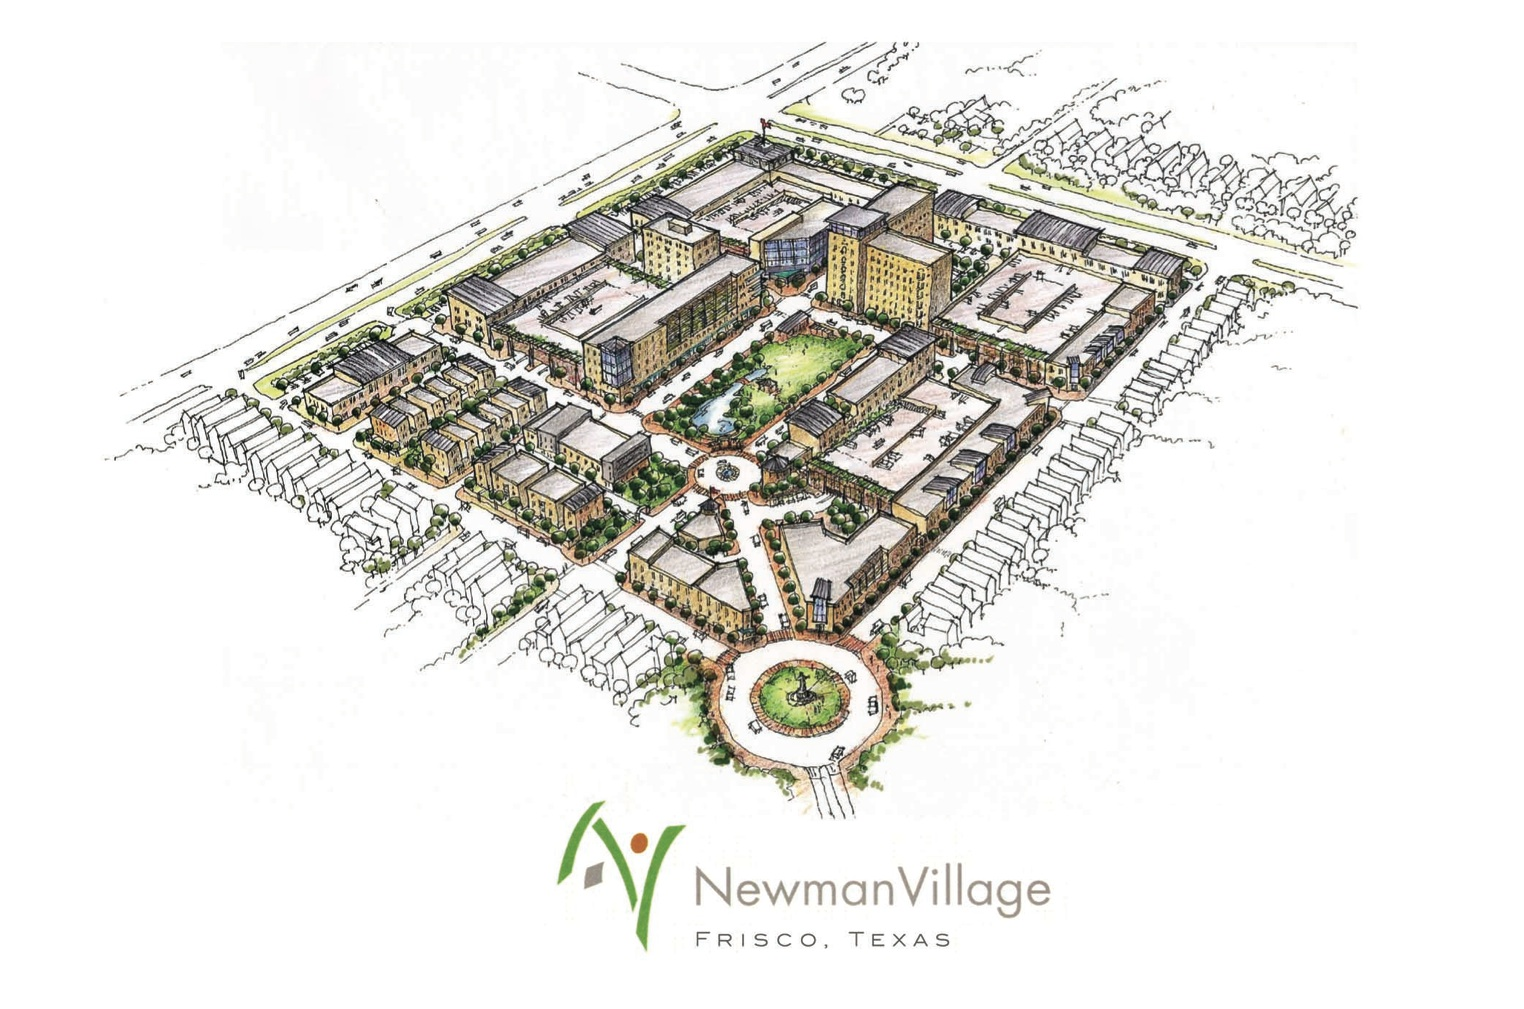 Newman Village Urban Retail Center